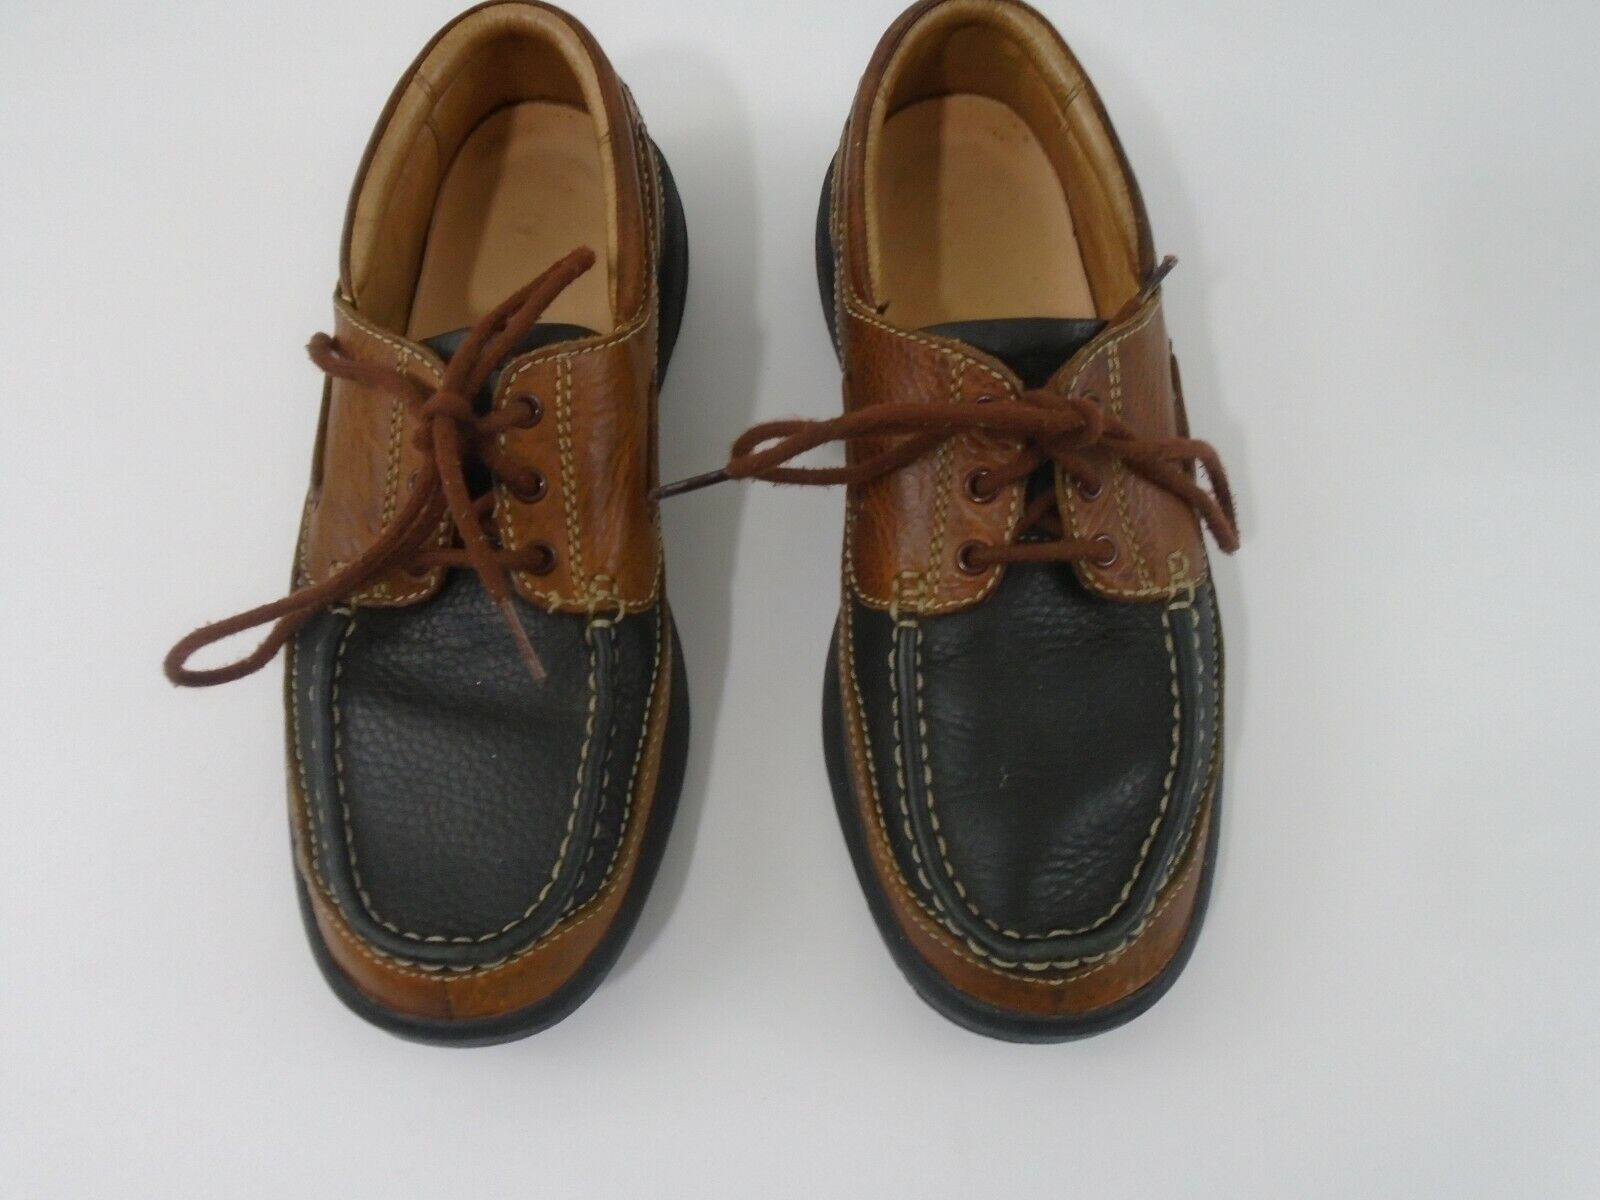 Dr. Comfort Mike Men's Therapeutic Diabetic Extra Depth Boat shoes size 9.5 M